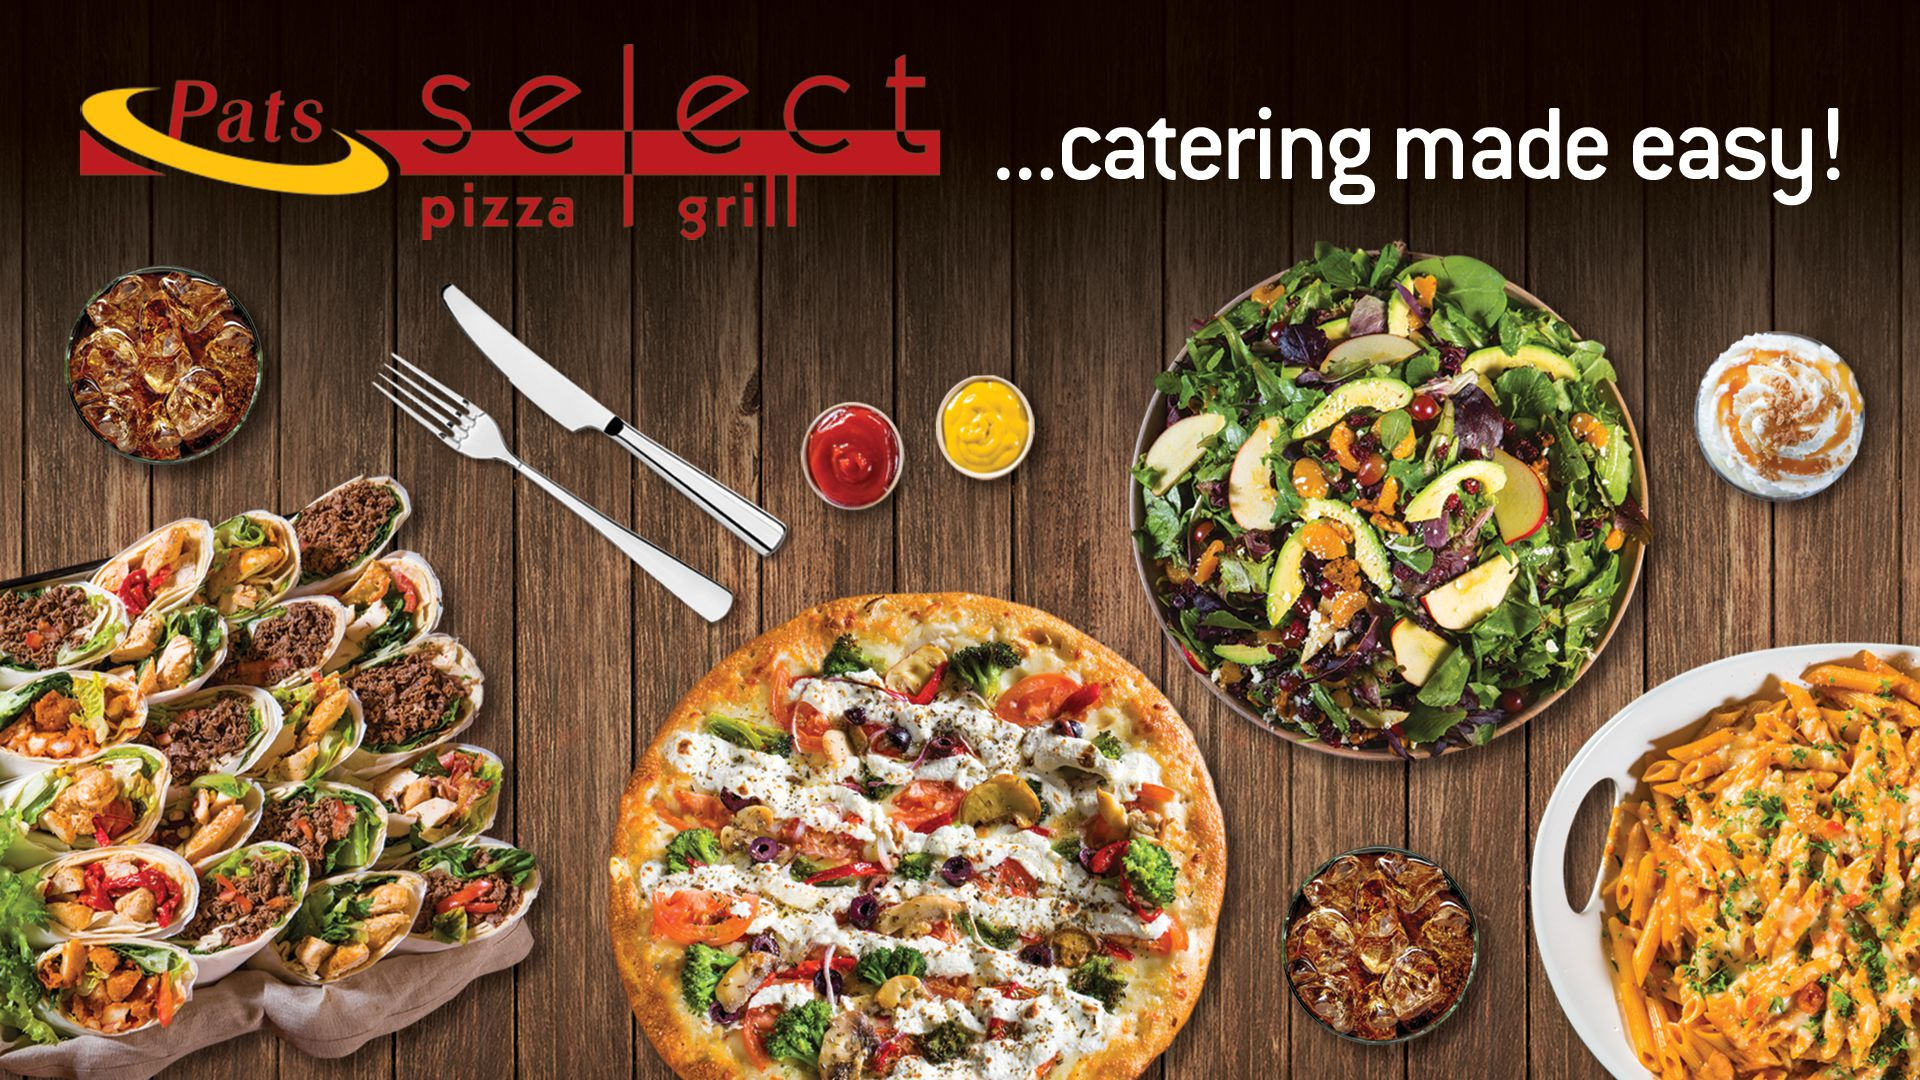 Catering - Maryland, Delaware, New Jersey, and Pennsylvania